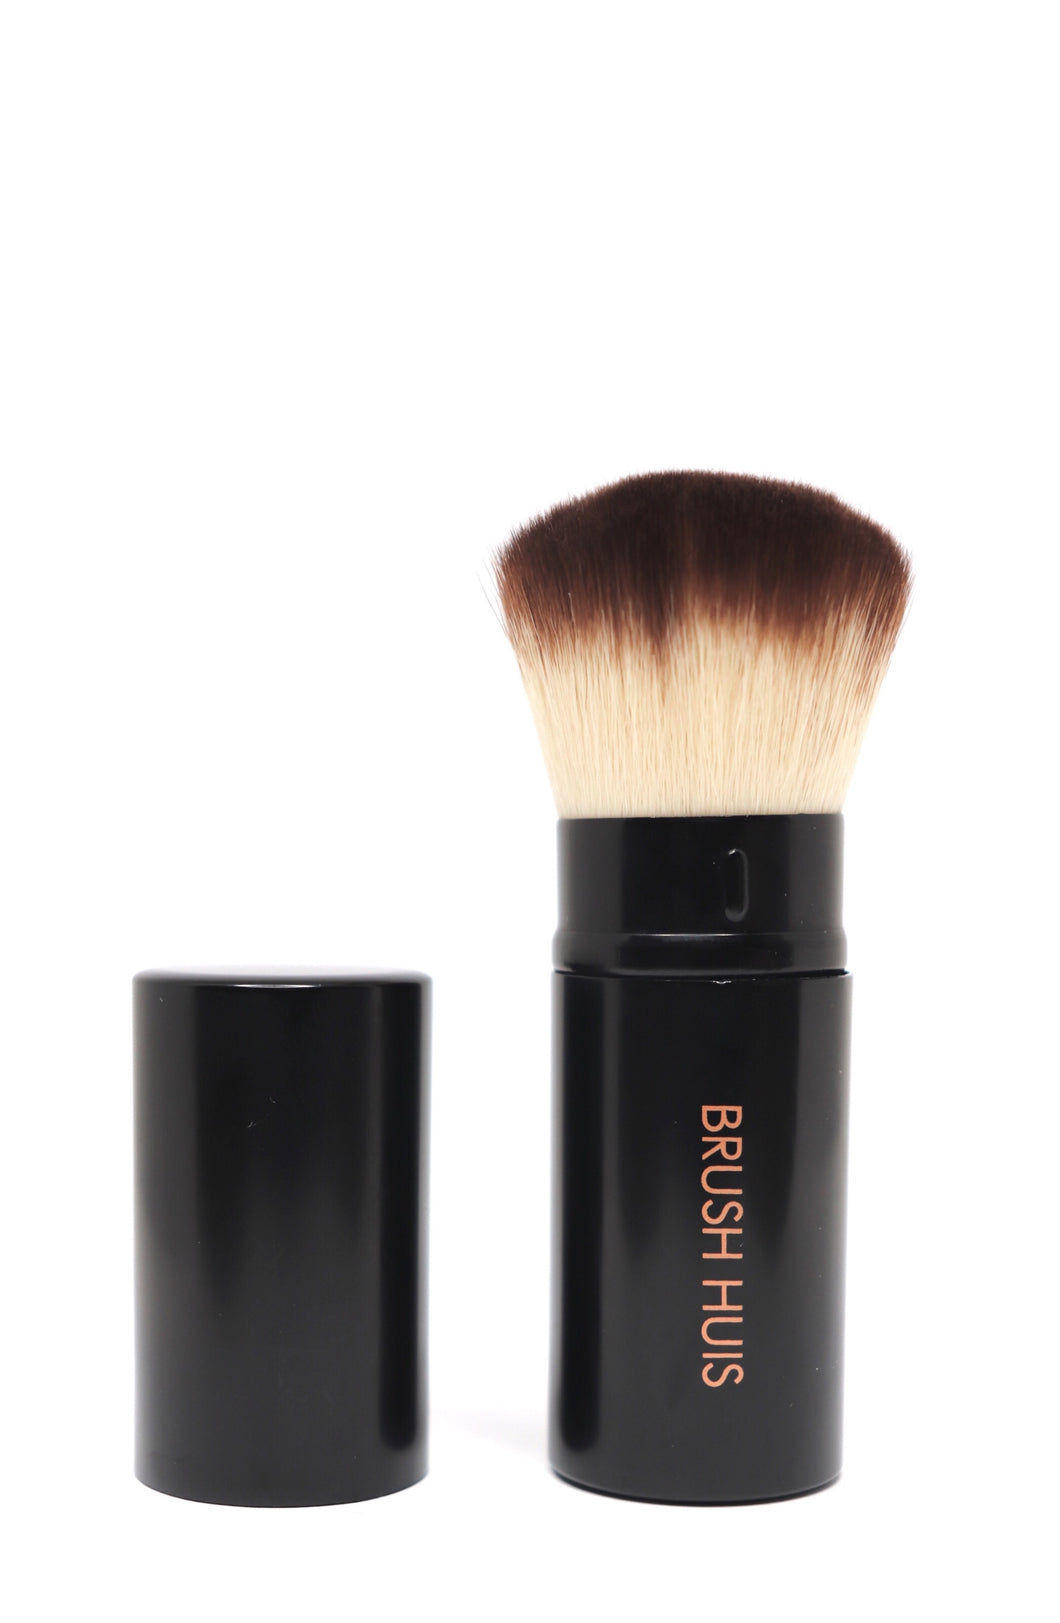 Brush Huis. Affordable makeup brushes. Good quality makeup brushes.